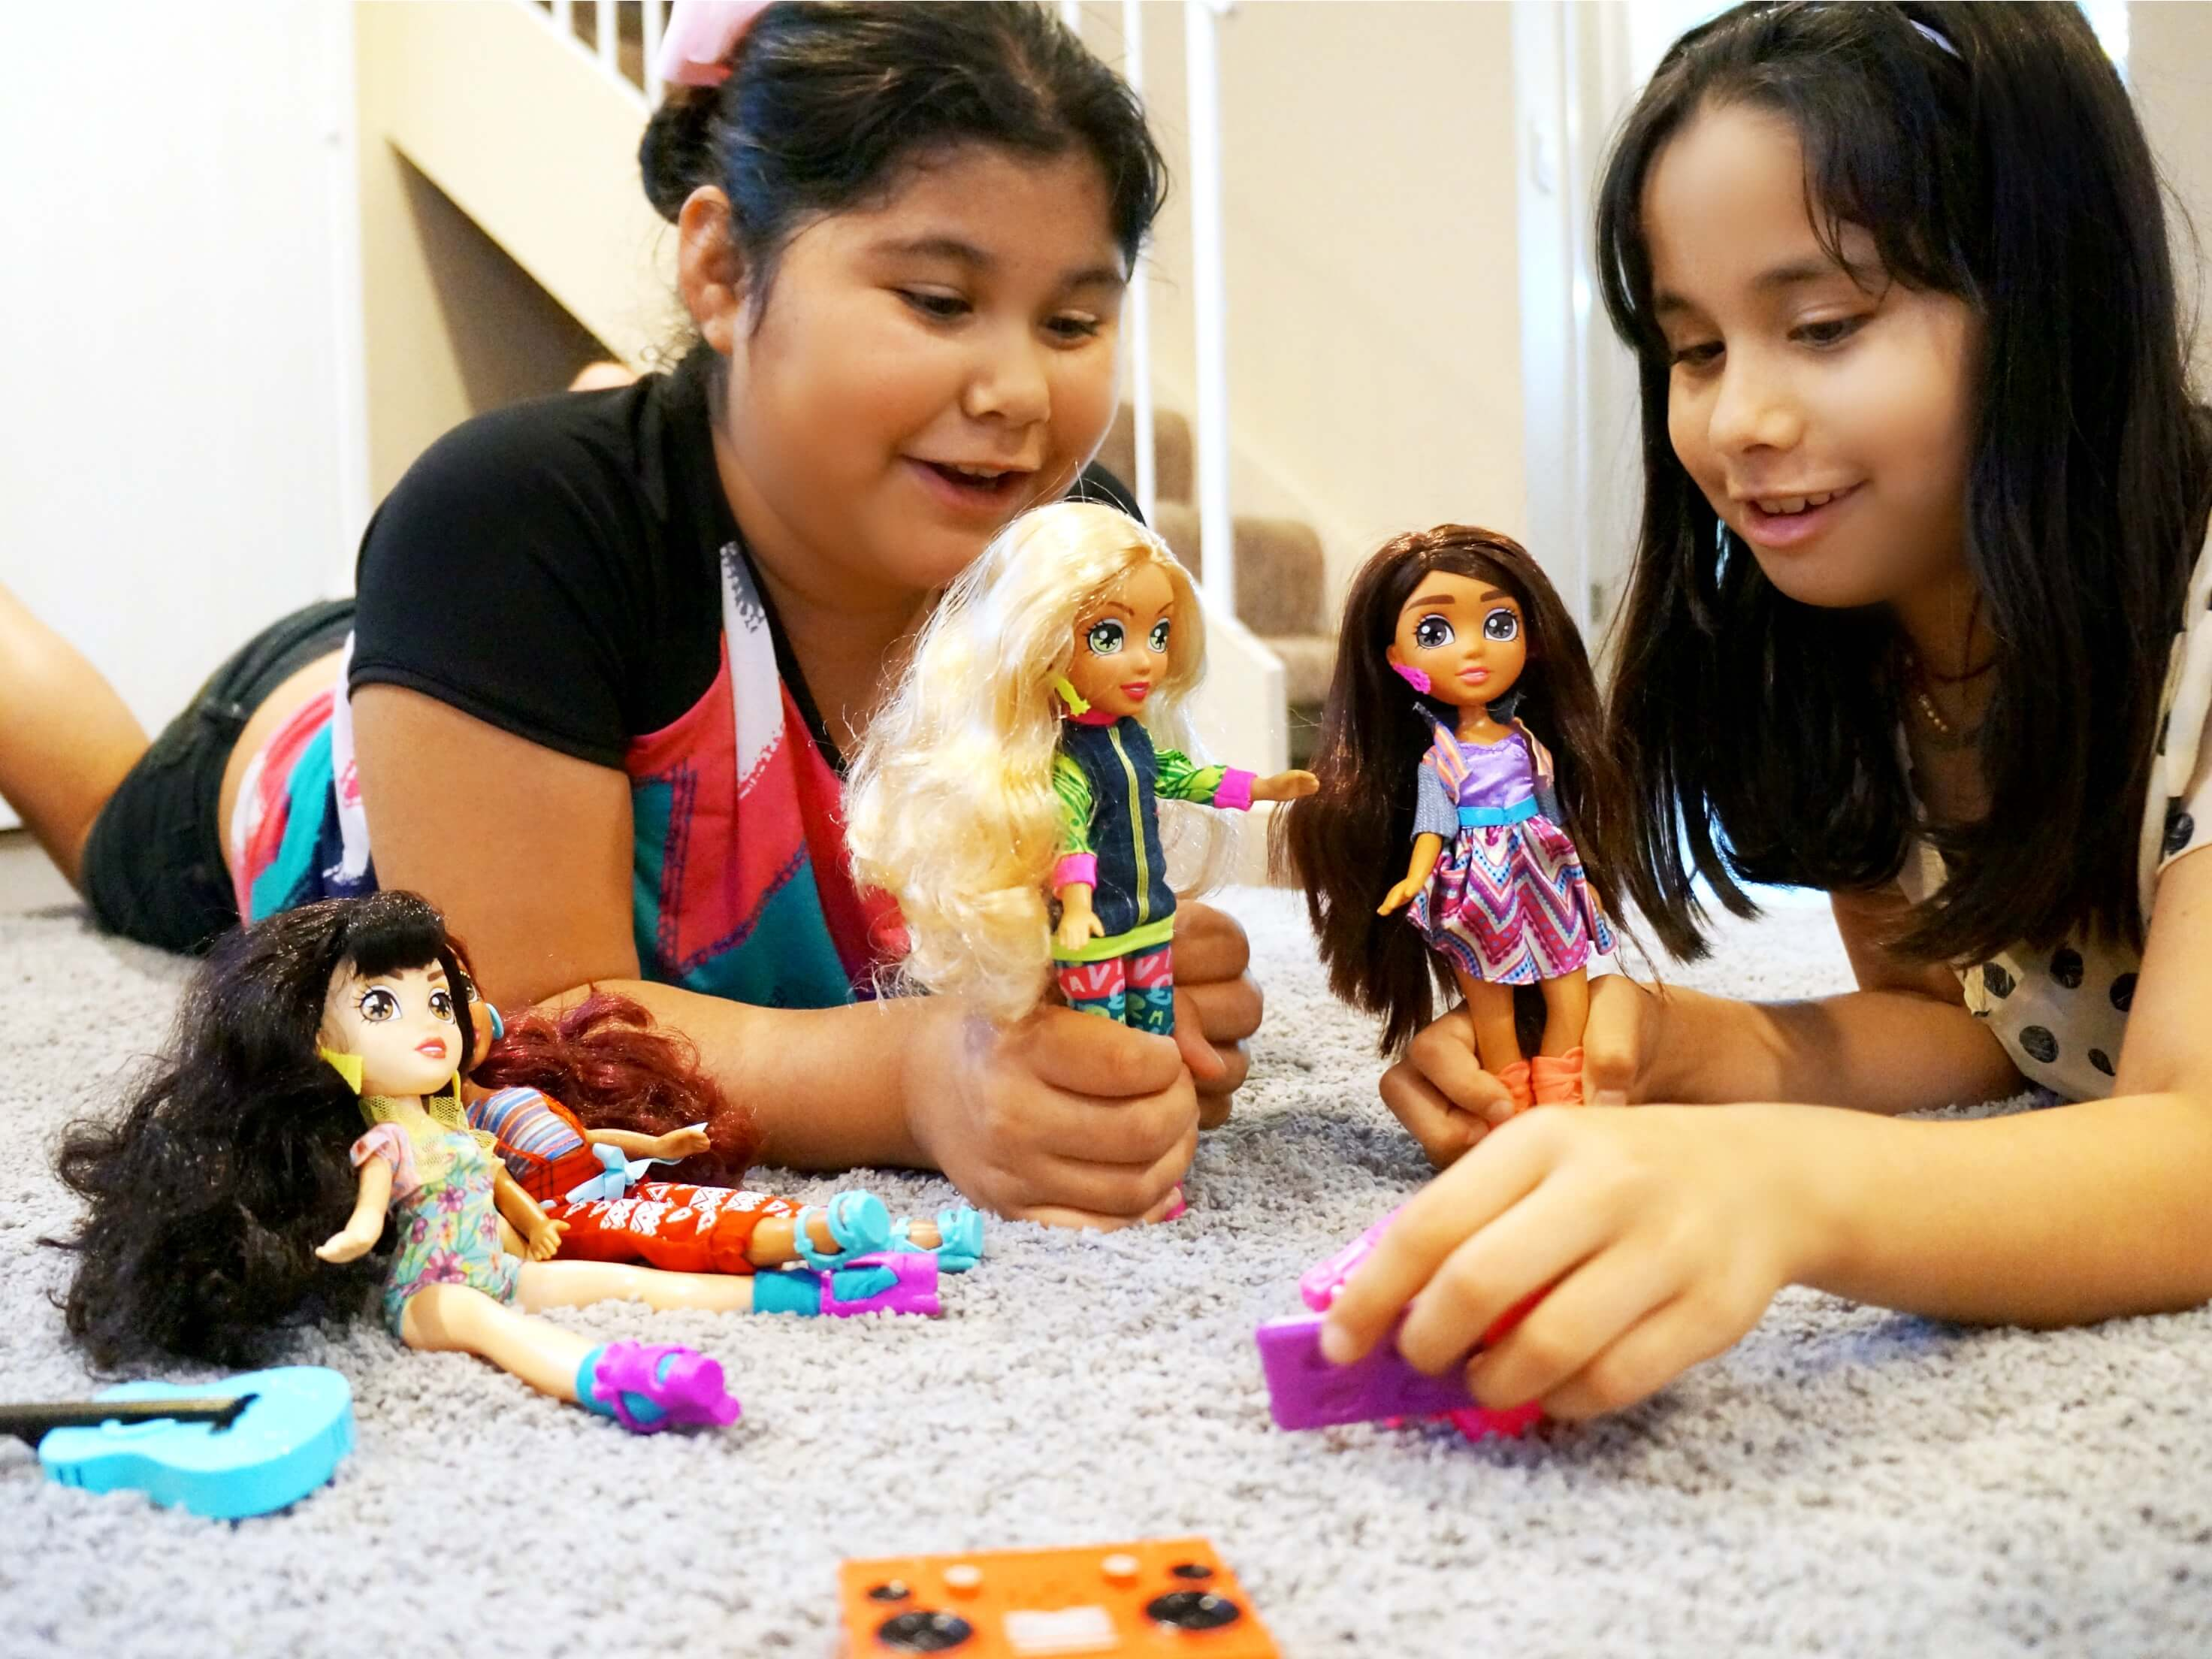 Playing dress up with Vi and Va fashion dolls